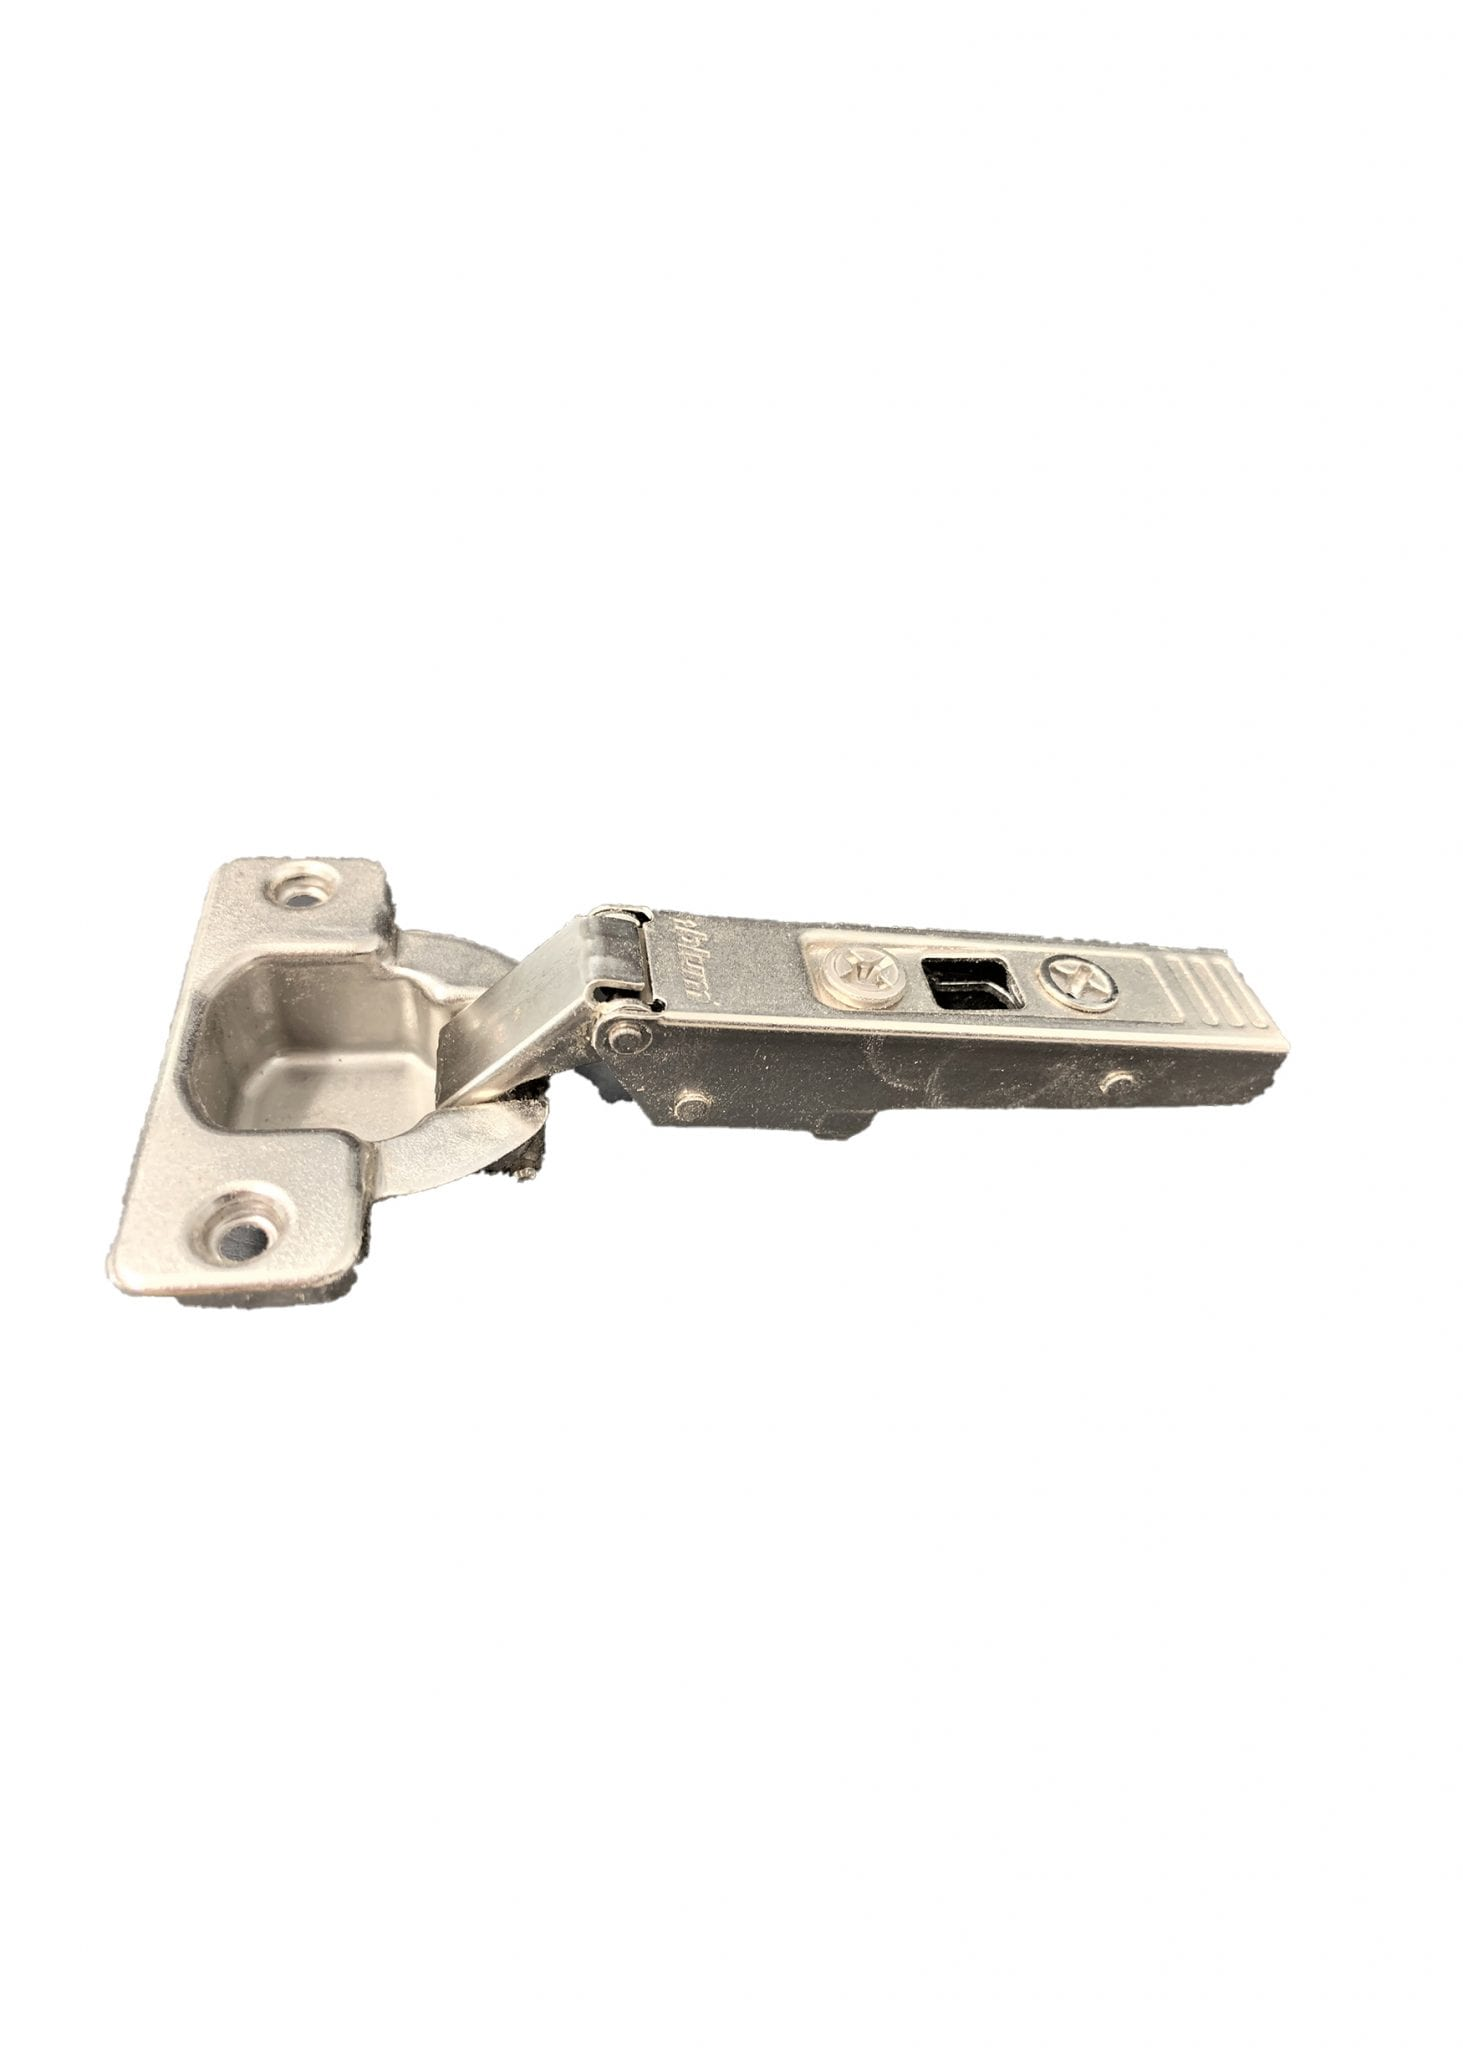 Blum Top Clip Hinge 110 Degree